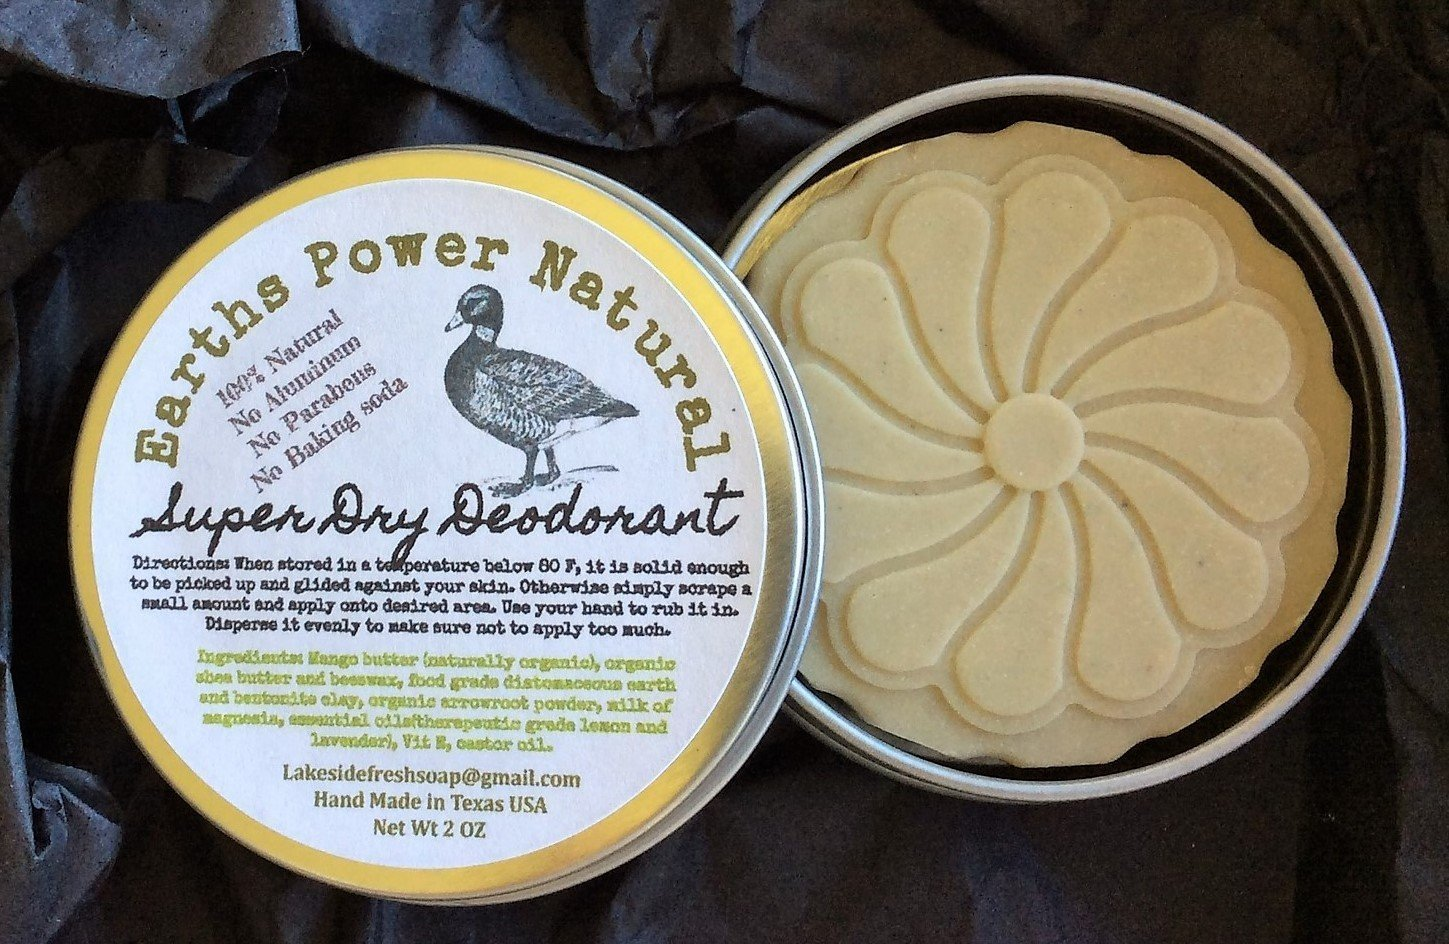 Amazon.com: All Natural Super Dry Deodorant Diatomaceous earth, Milk of Magnesia, Pick Up and Glide 2 oz Solid Bar Aluminum Free Baking Soda Free, ...